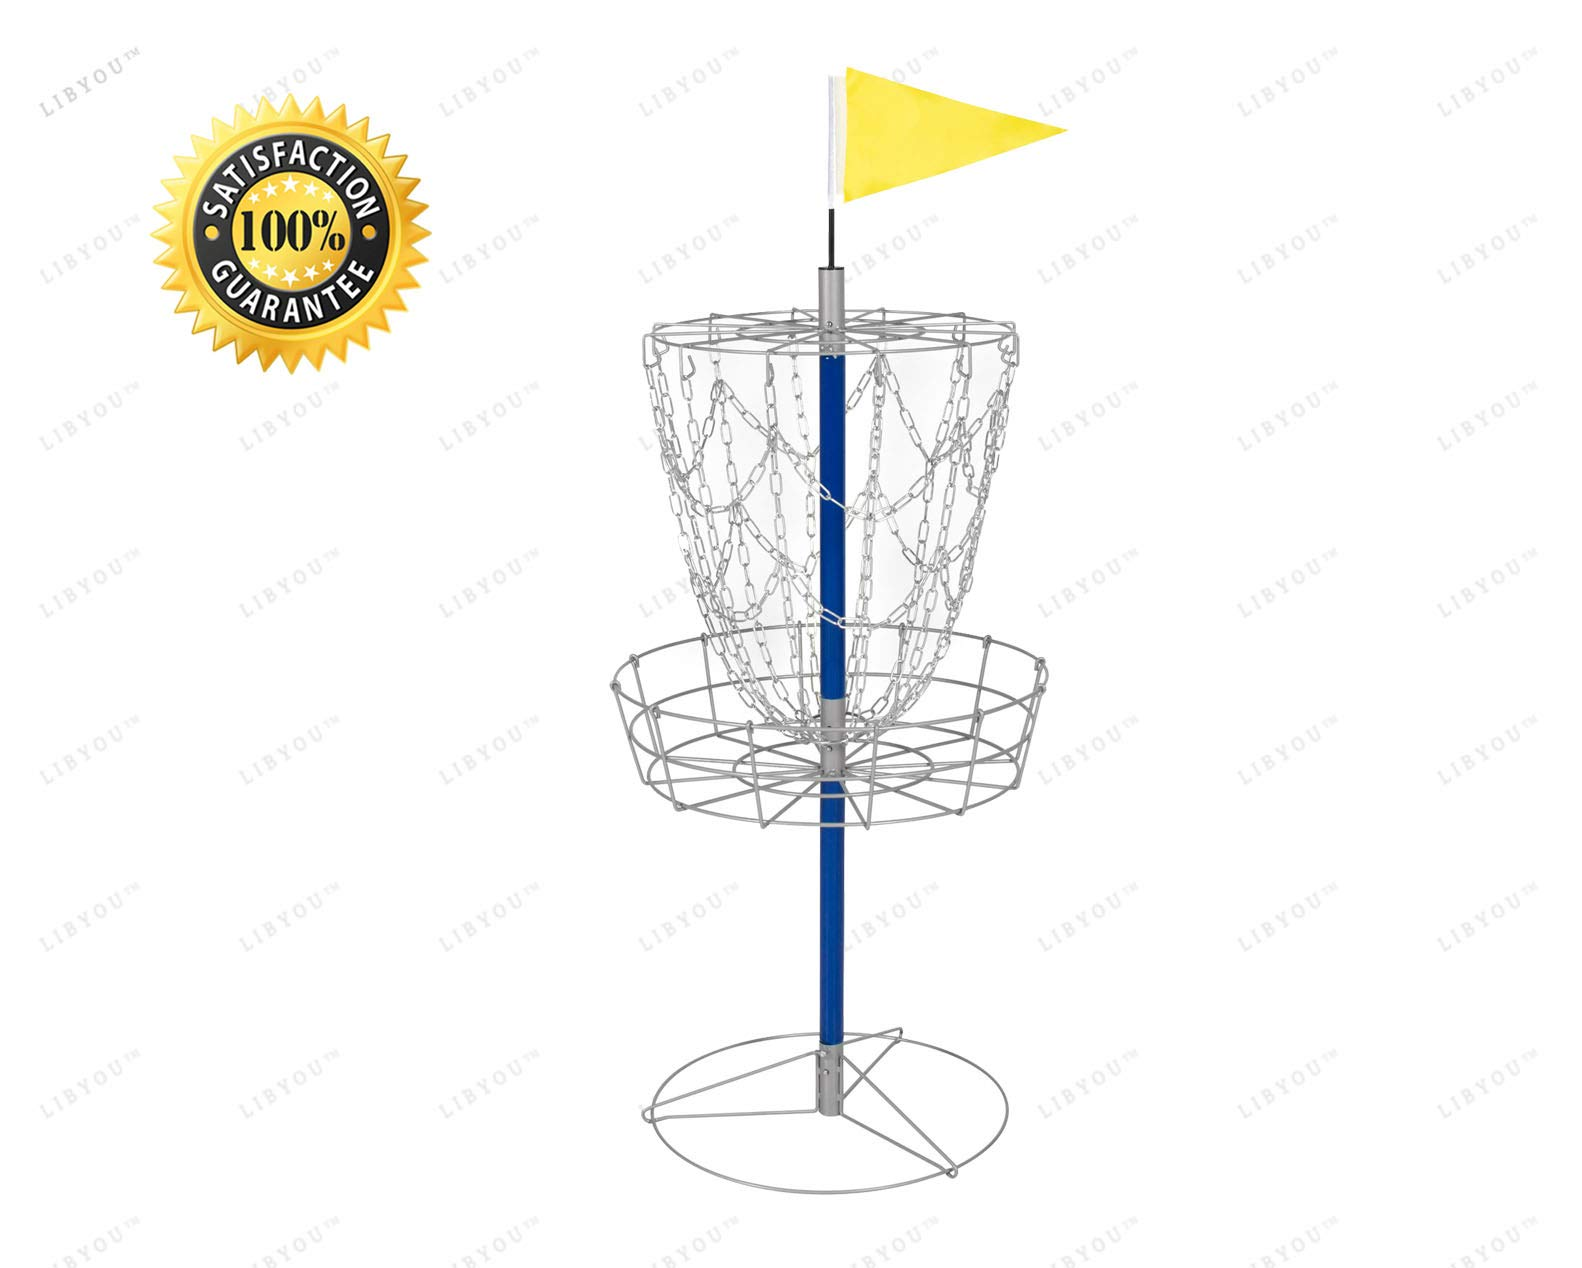 LIBYOU__Portable disc Golf Basket,disc Golf Basket,Golf Basket Chains,disc Golf Basket Full Size,disc Golf Basket with Legs